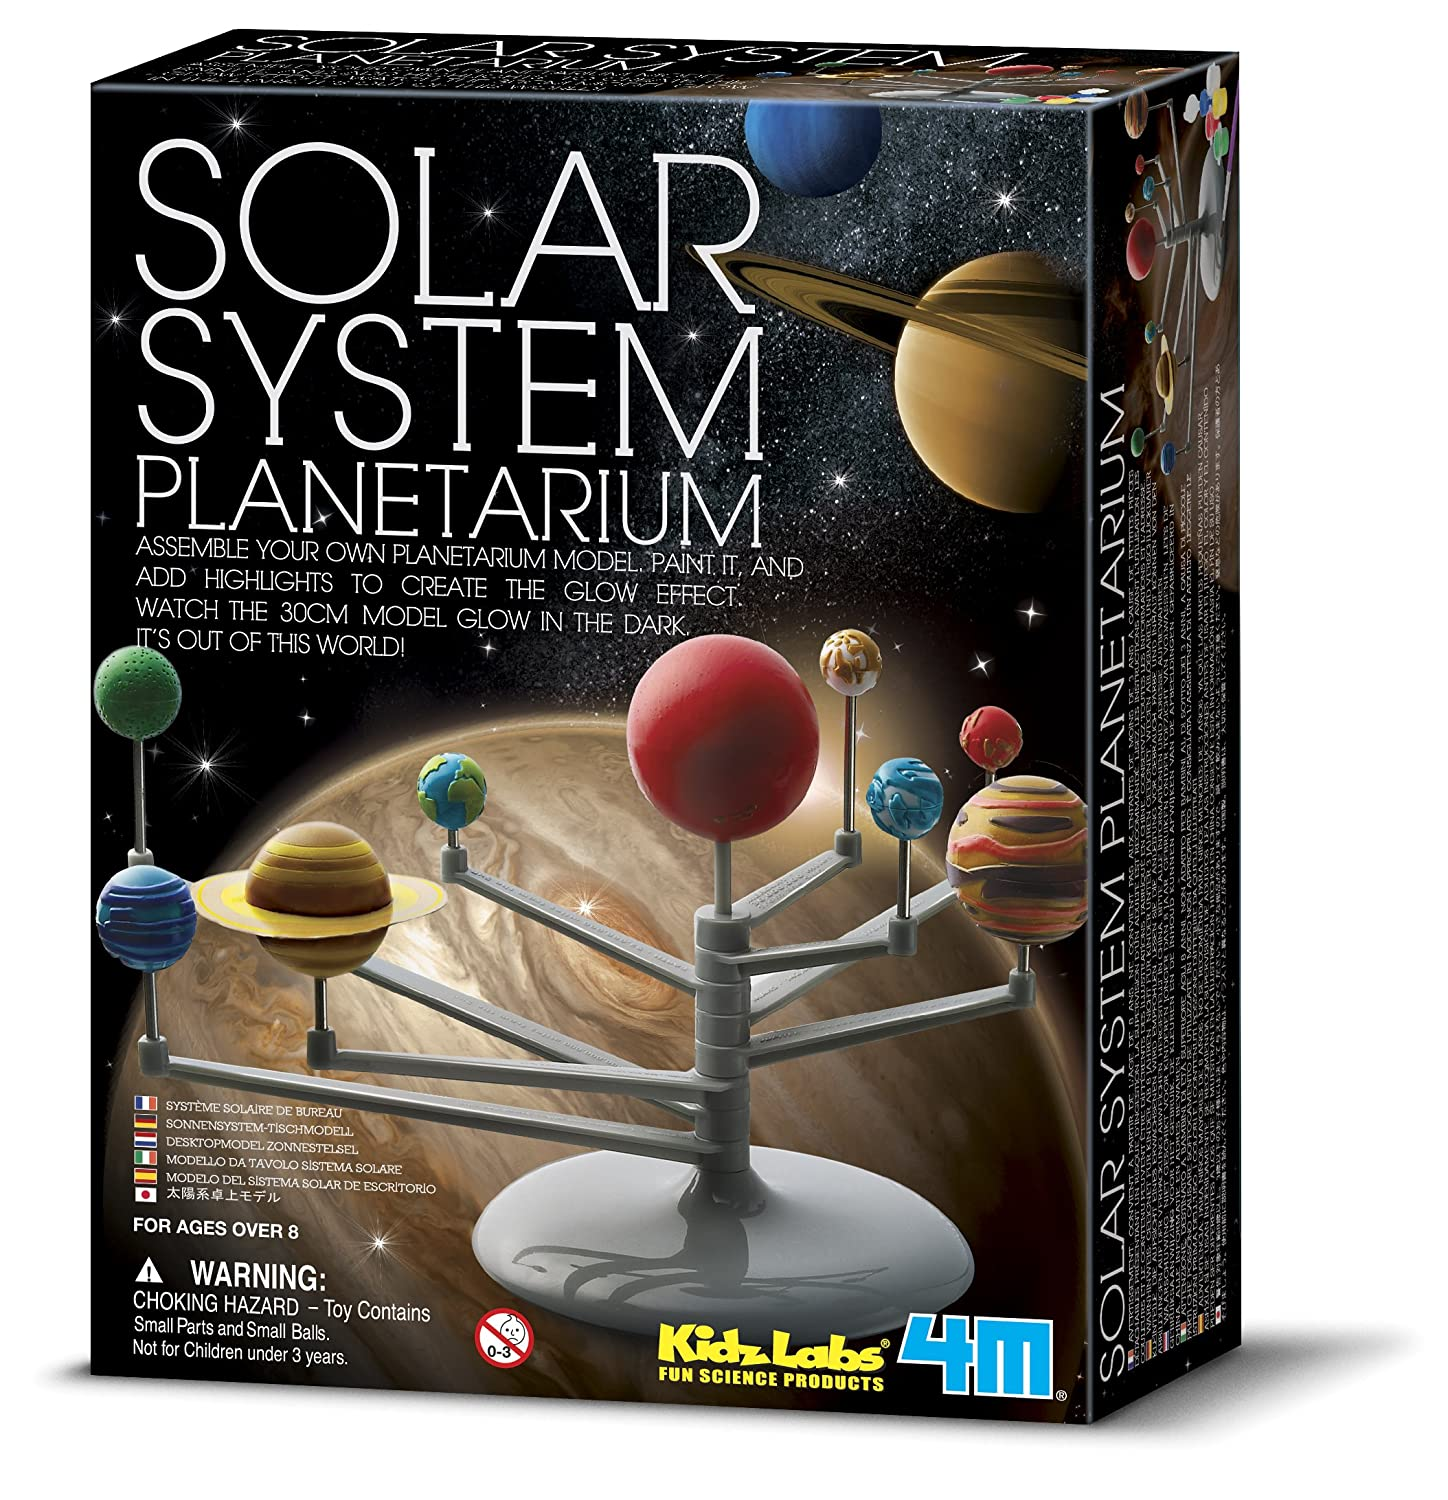 4m Solar System Planetarium Toys Games Free Illustration Orbit Diagram Digital